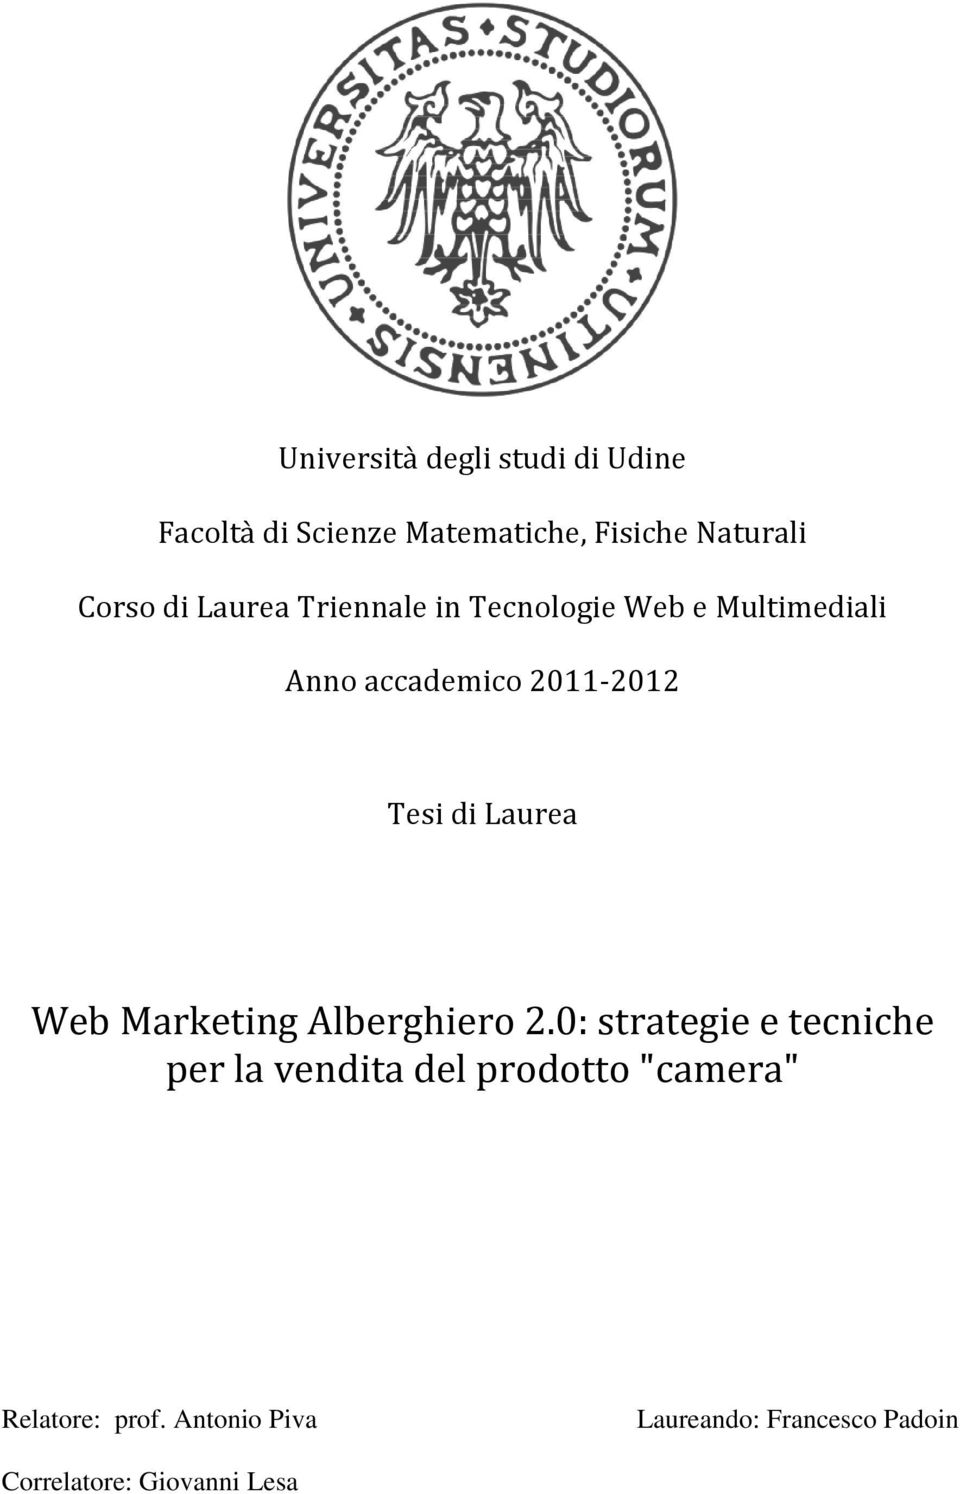 Laurea Web Marketing Alberghiero 2.